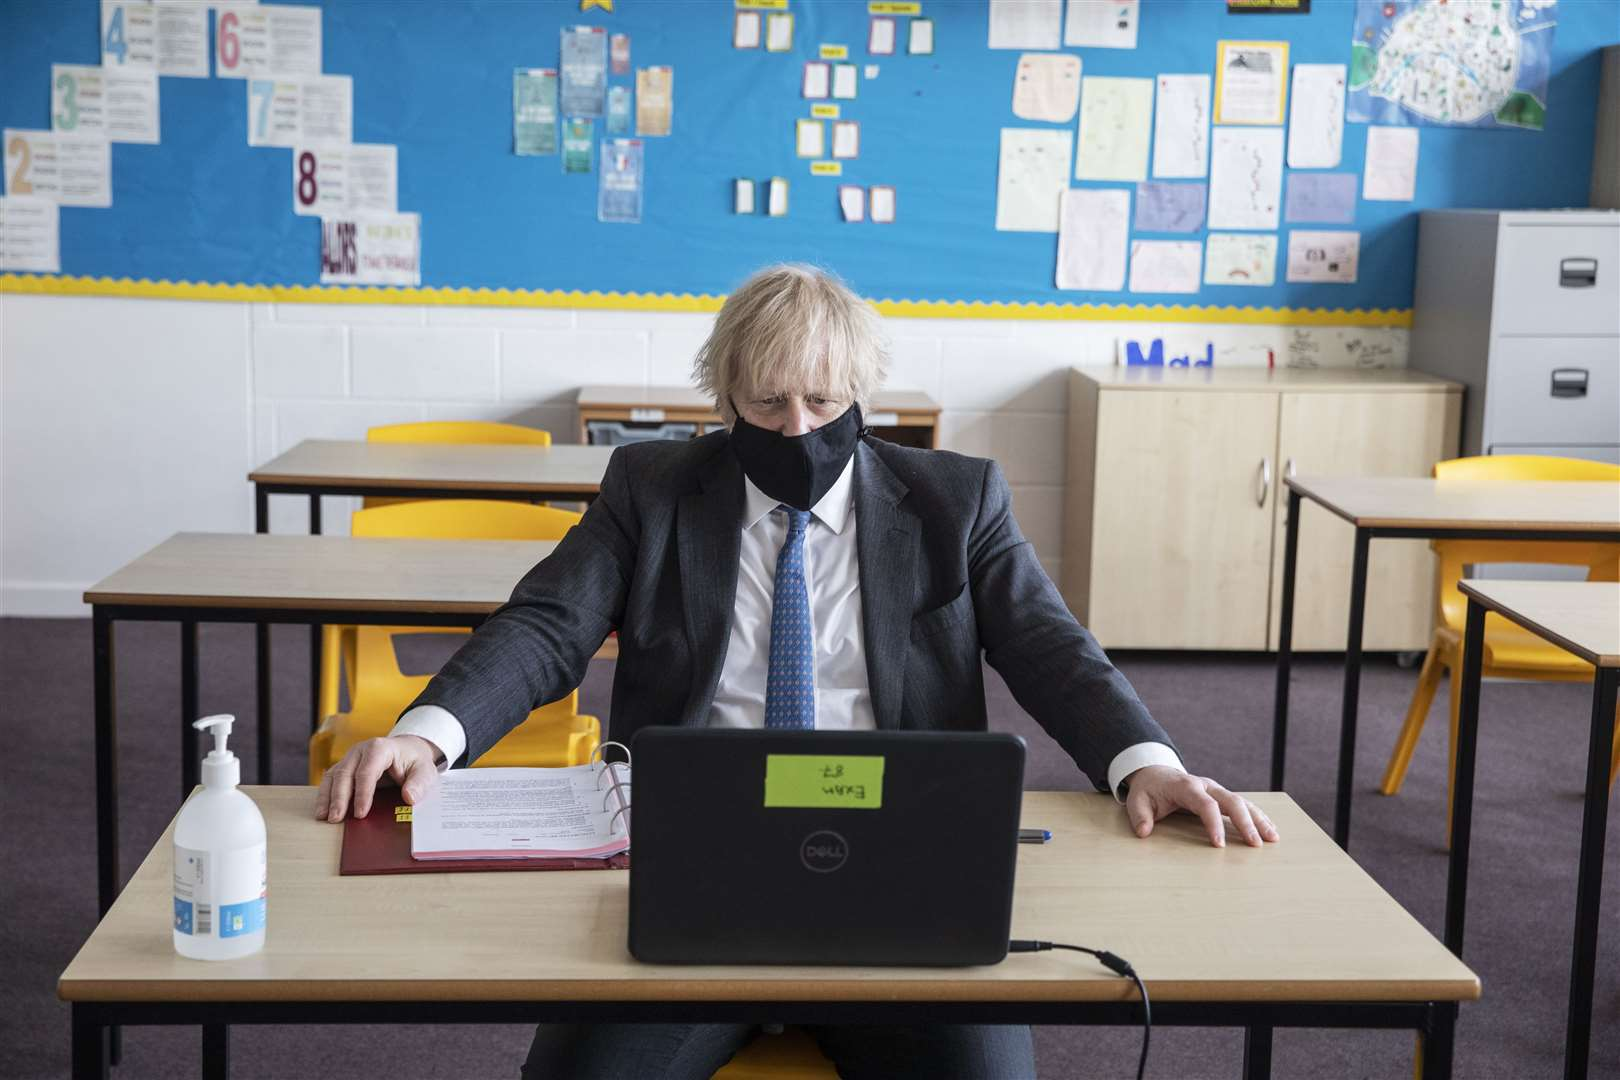 Prime Minister Boris Johnson takes part in an online class during a visit to Sedgehill School in Lewisham, south-east London (Jack Hill/The Times/PA)